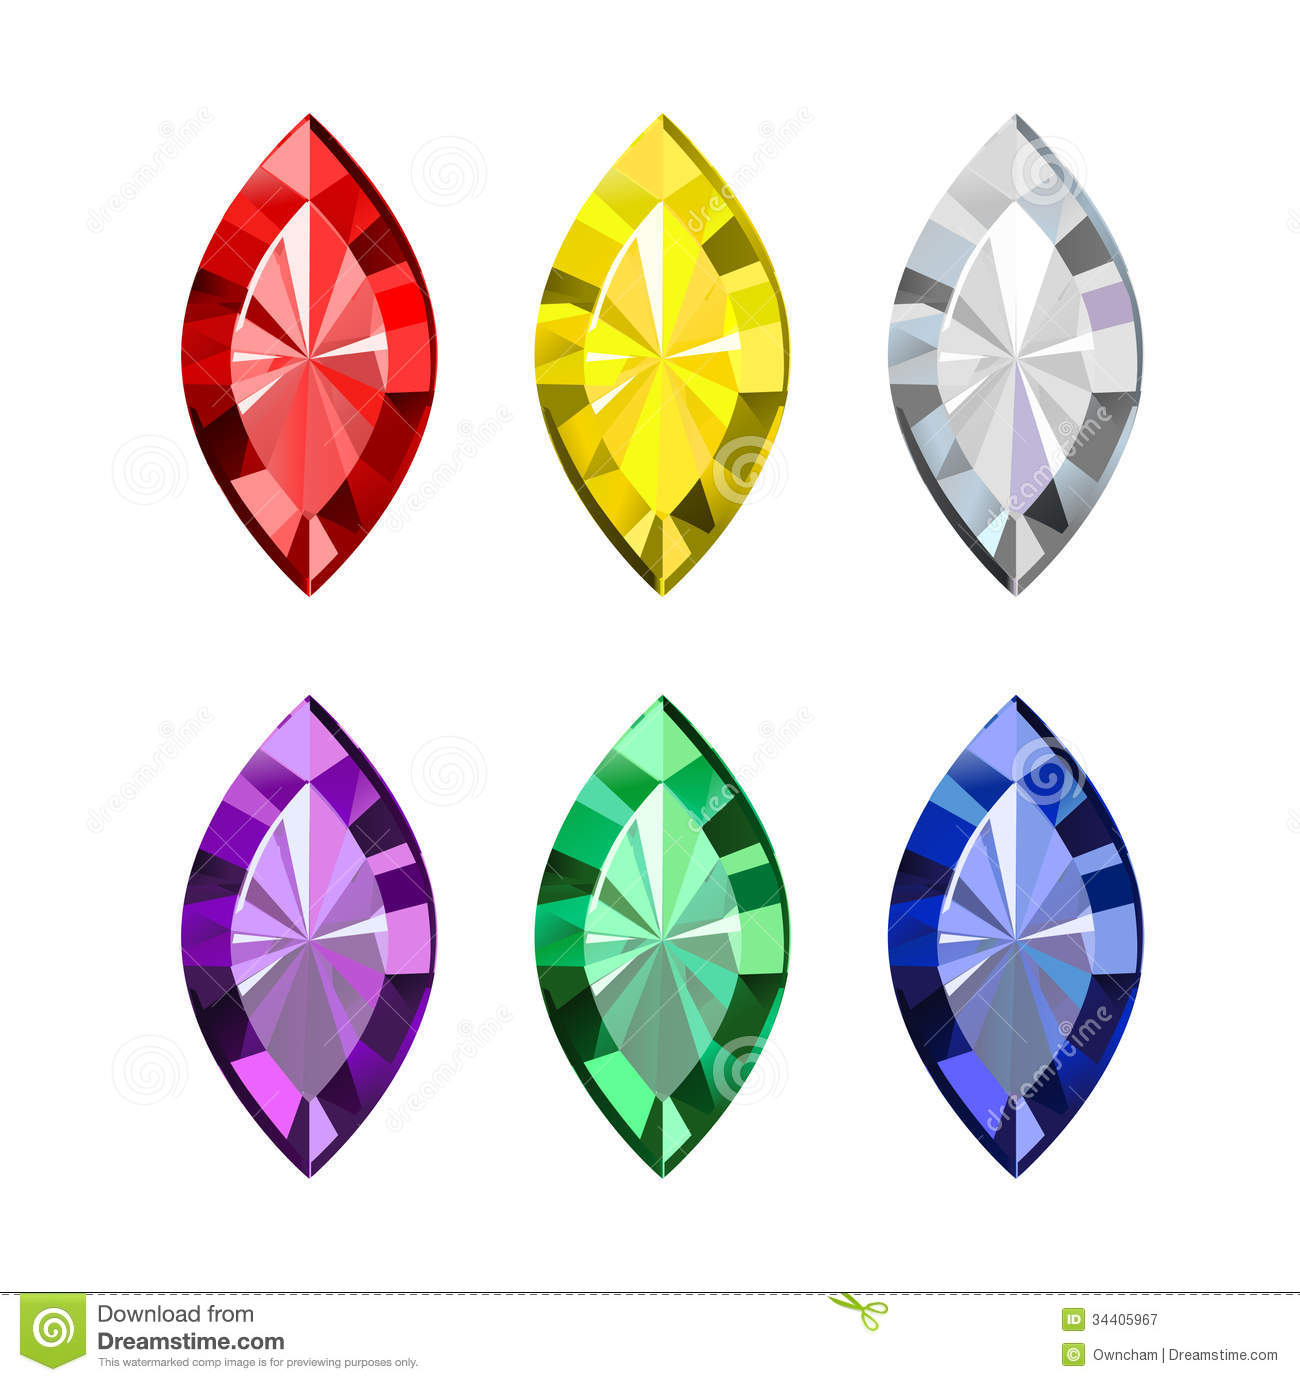 Diamond clipart colorful Gems Gems Download #14 Download